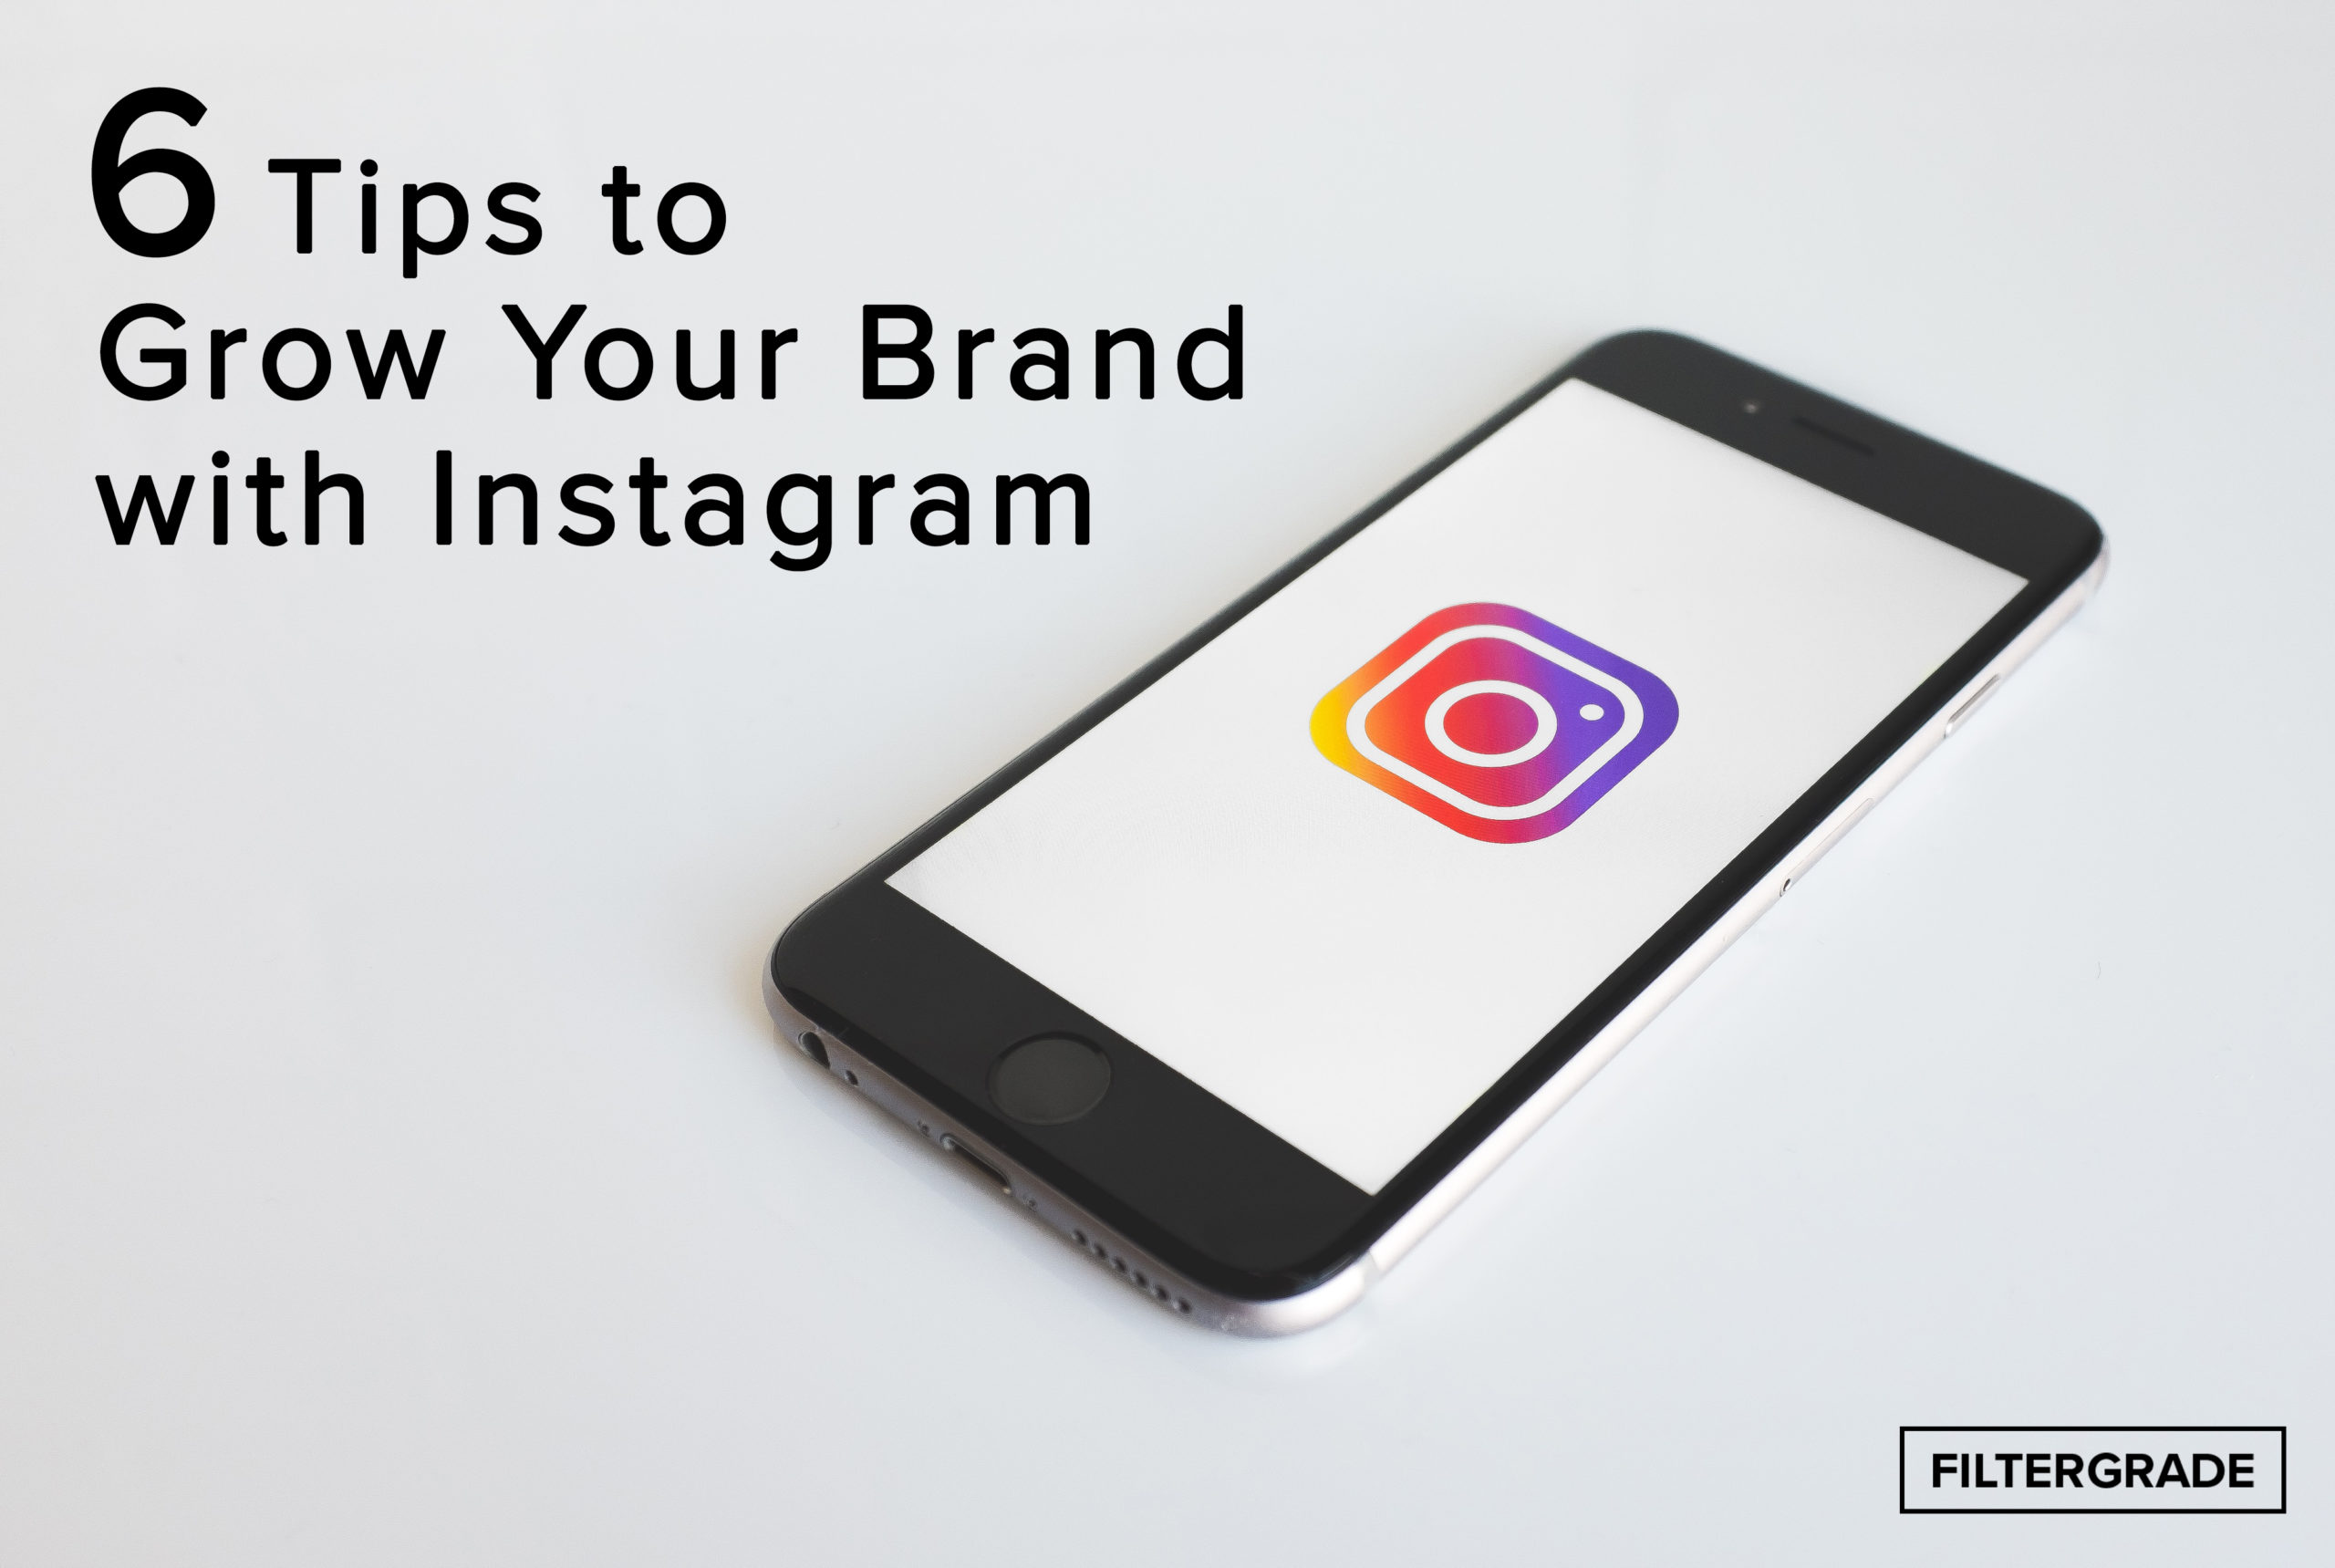 6 Tips to Grow Your Brand wit Instagram - FilterGrade